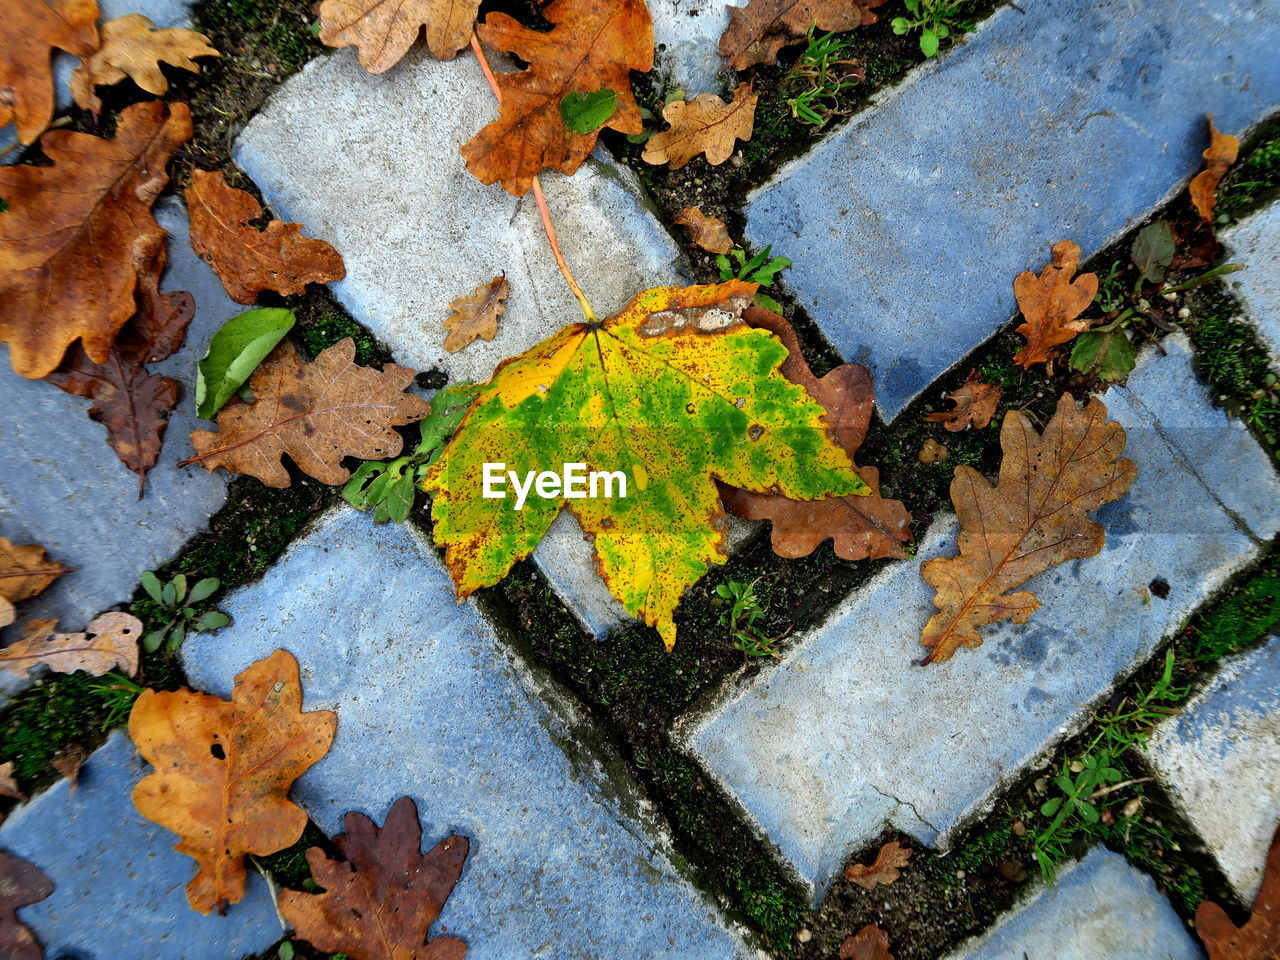 leaf, plant part, autumn, no people, change, nature, day, close-up, dry, high angle view, leaves, full frame, outdoors, moss, plant, beauty in nature, textured, falling, backgrounds, lichen, maple leaf, natural condition